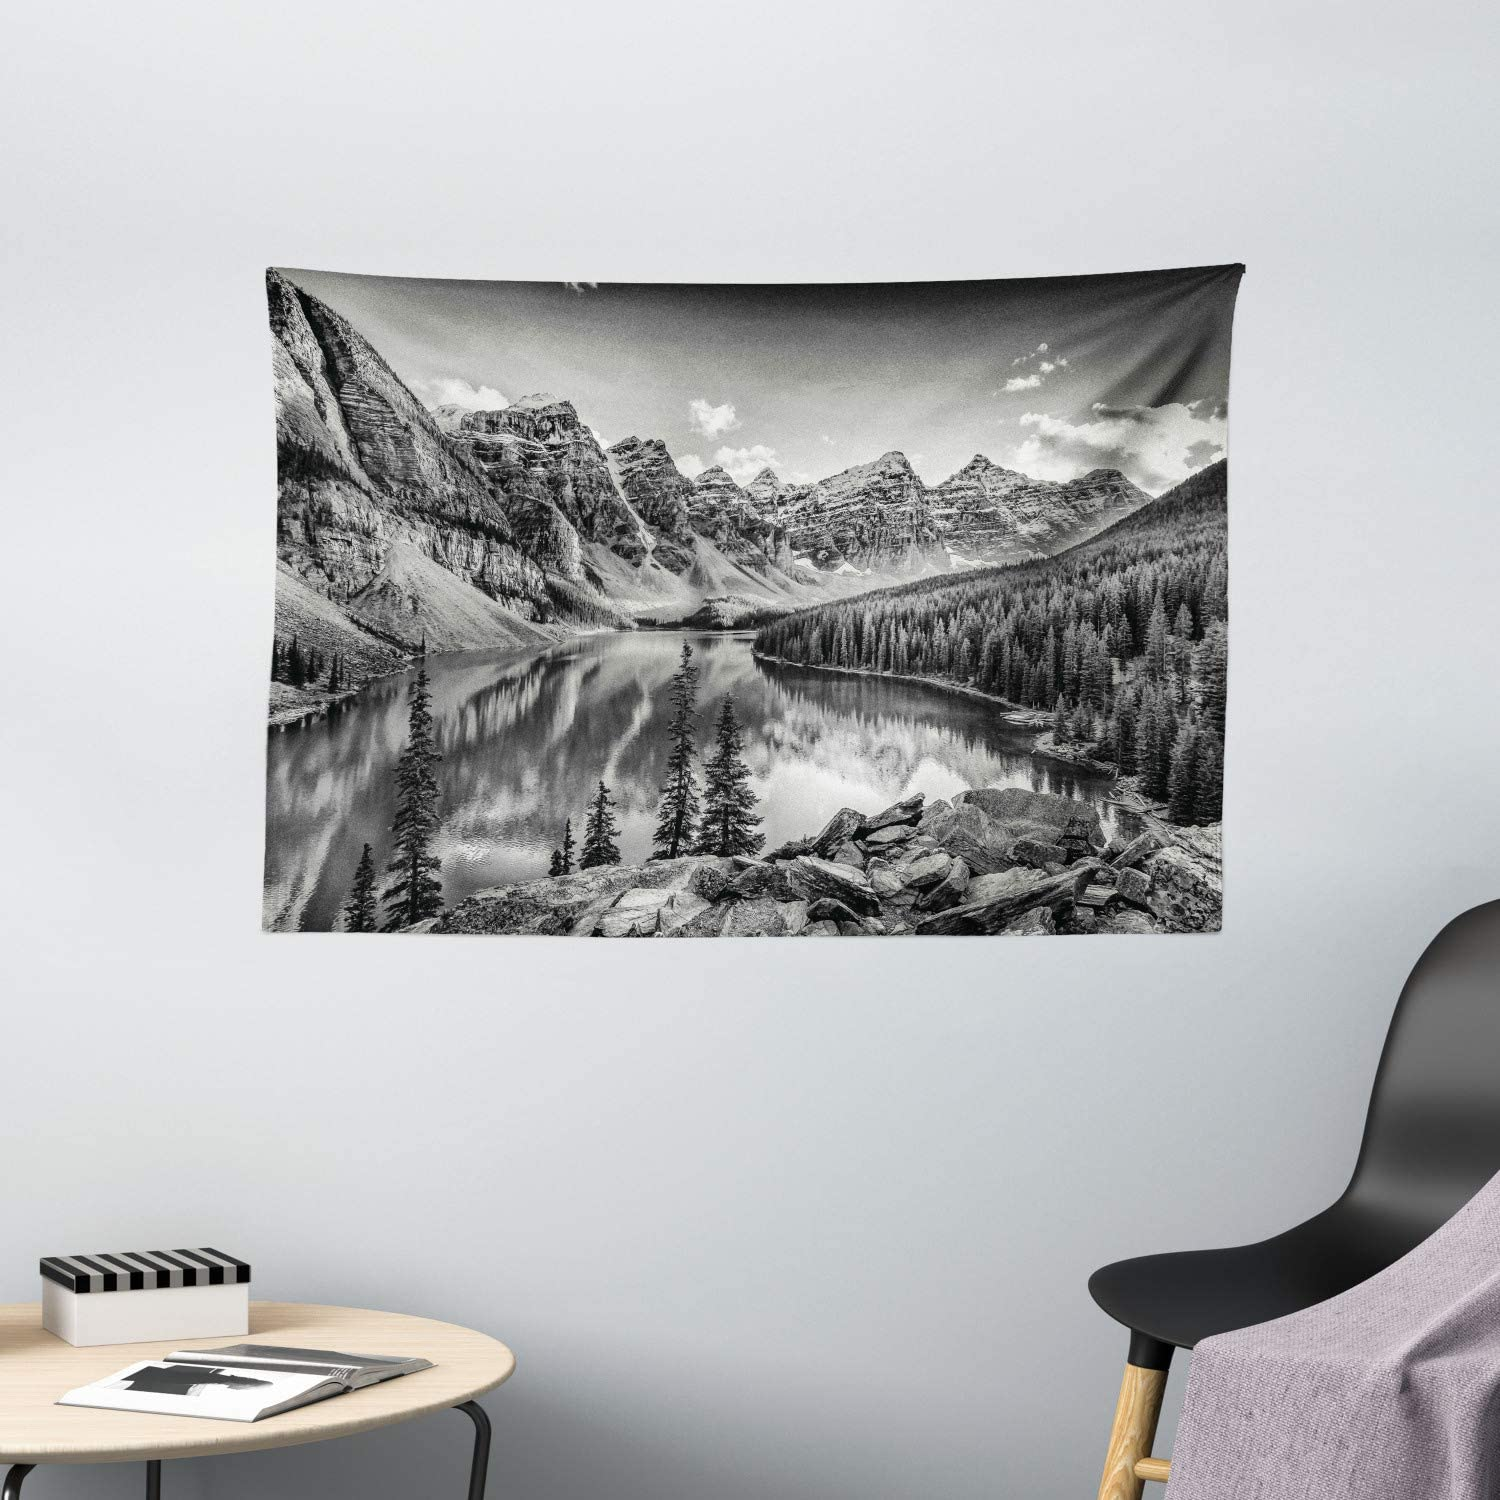 Ambesonne Black and White Tapestry, Mountain Creek Lake by The Hills Canadian Rocky Valley Peaceful Landscape Print, Wide Wall Hanging for Bedroom Living Room Dorm, 60